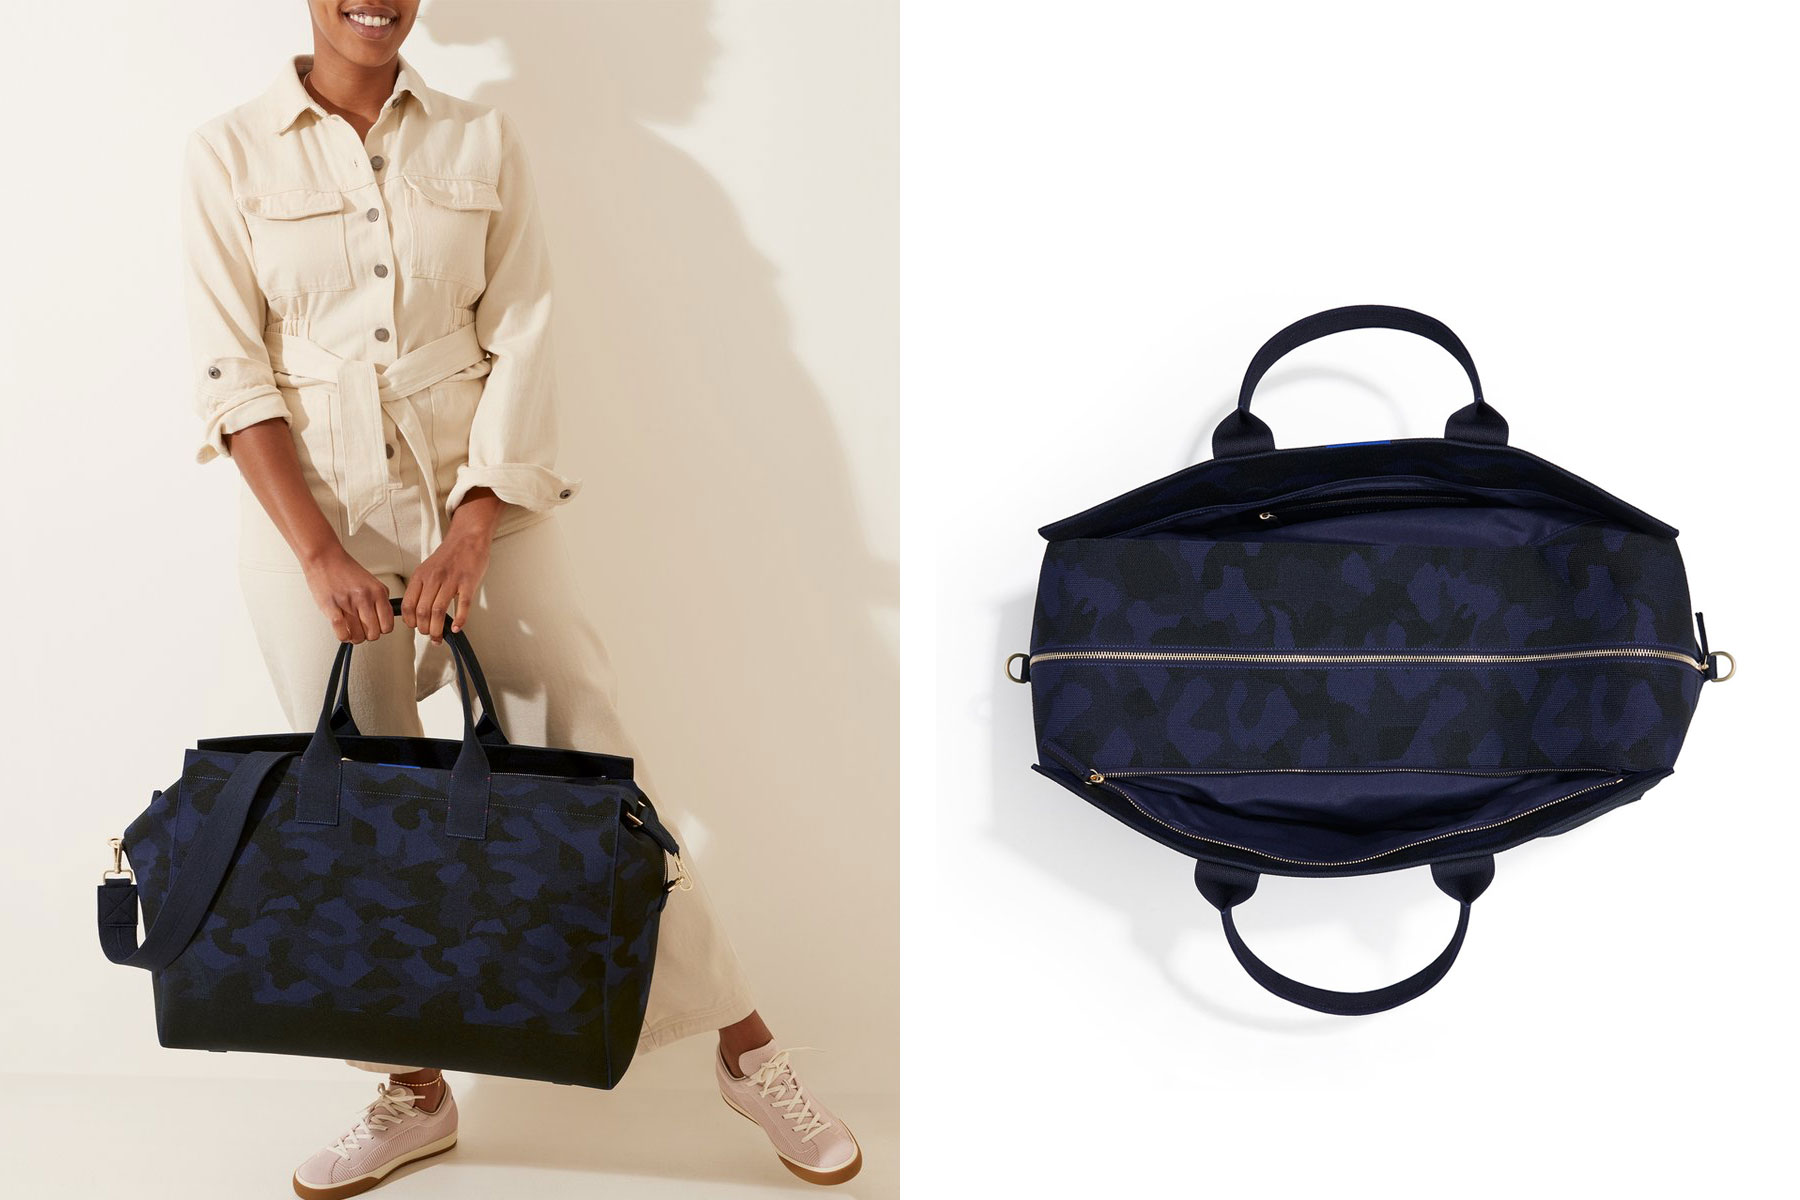 Woman holding black and navy camo weekender bag